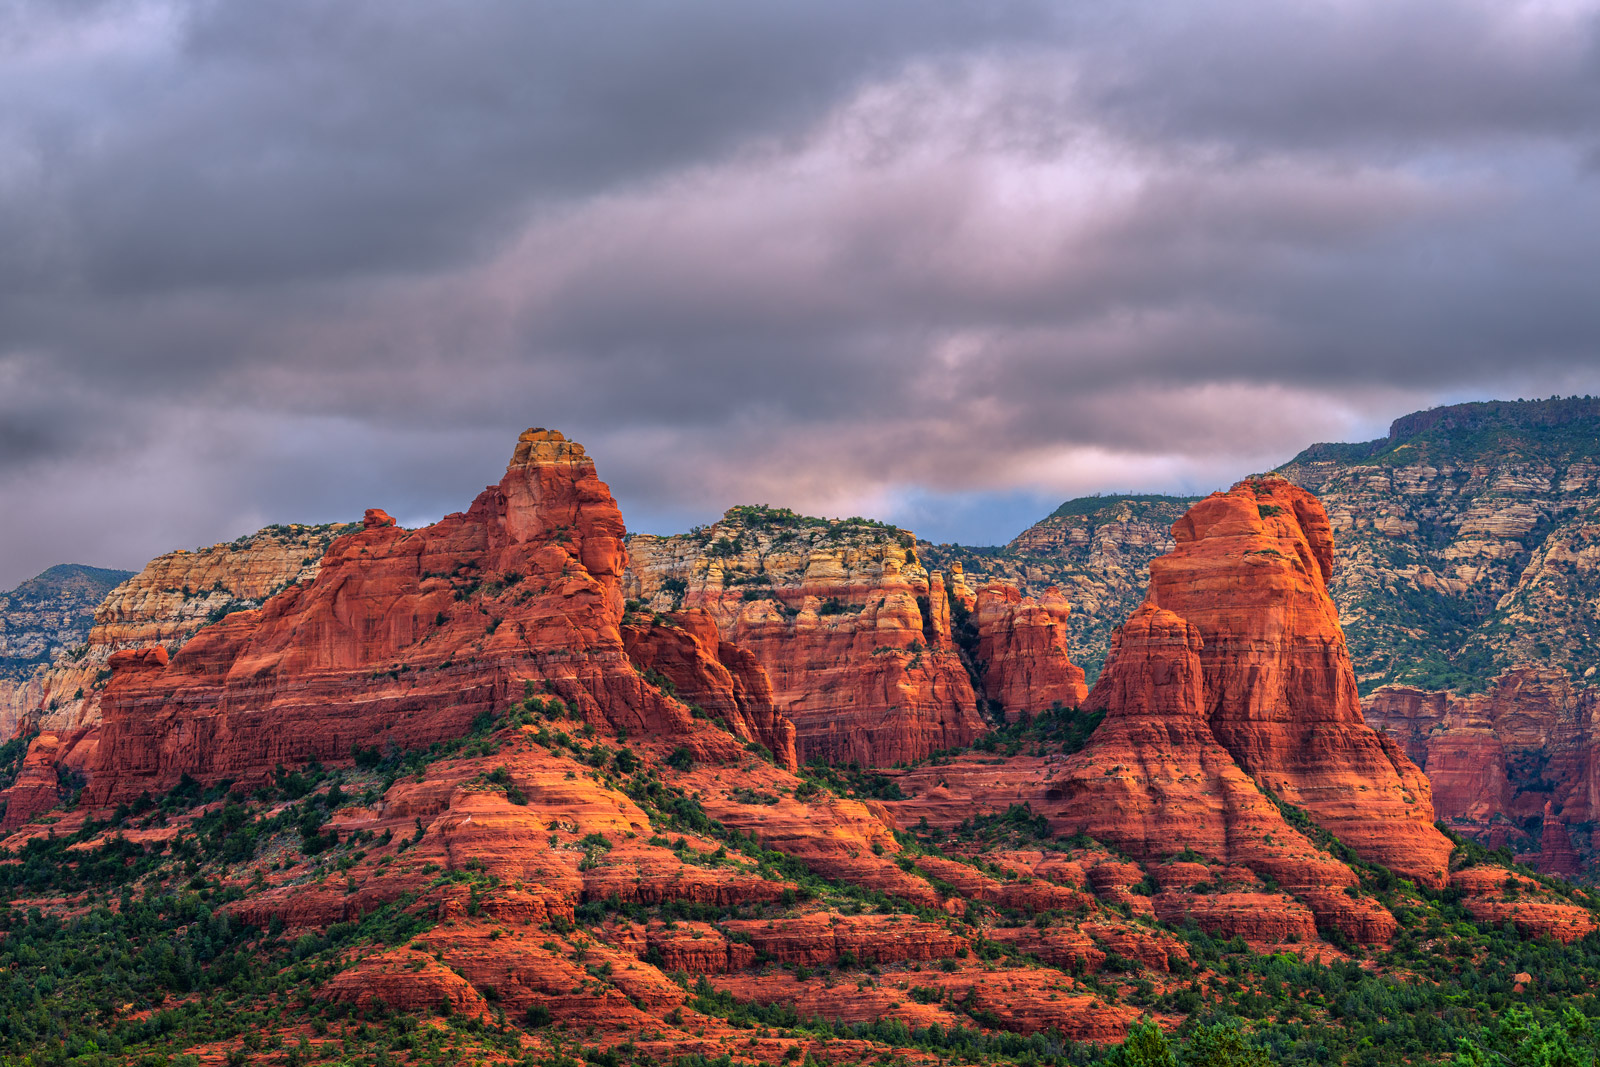 Arizona, Sedona, Sunrise, Red, Rock, dark clouds, limited edition, photograph, fine art, landscape, red rock, photo